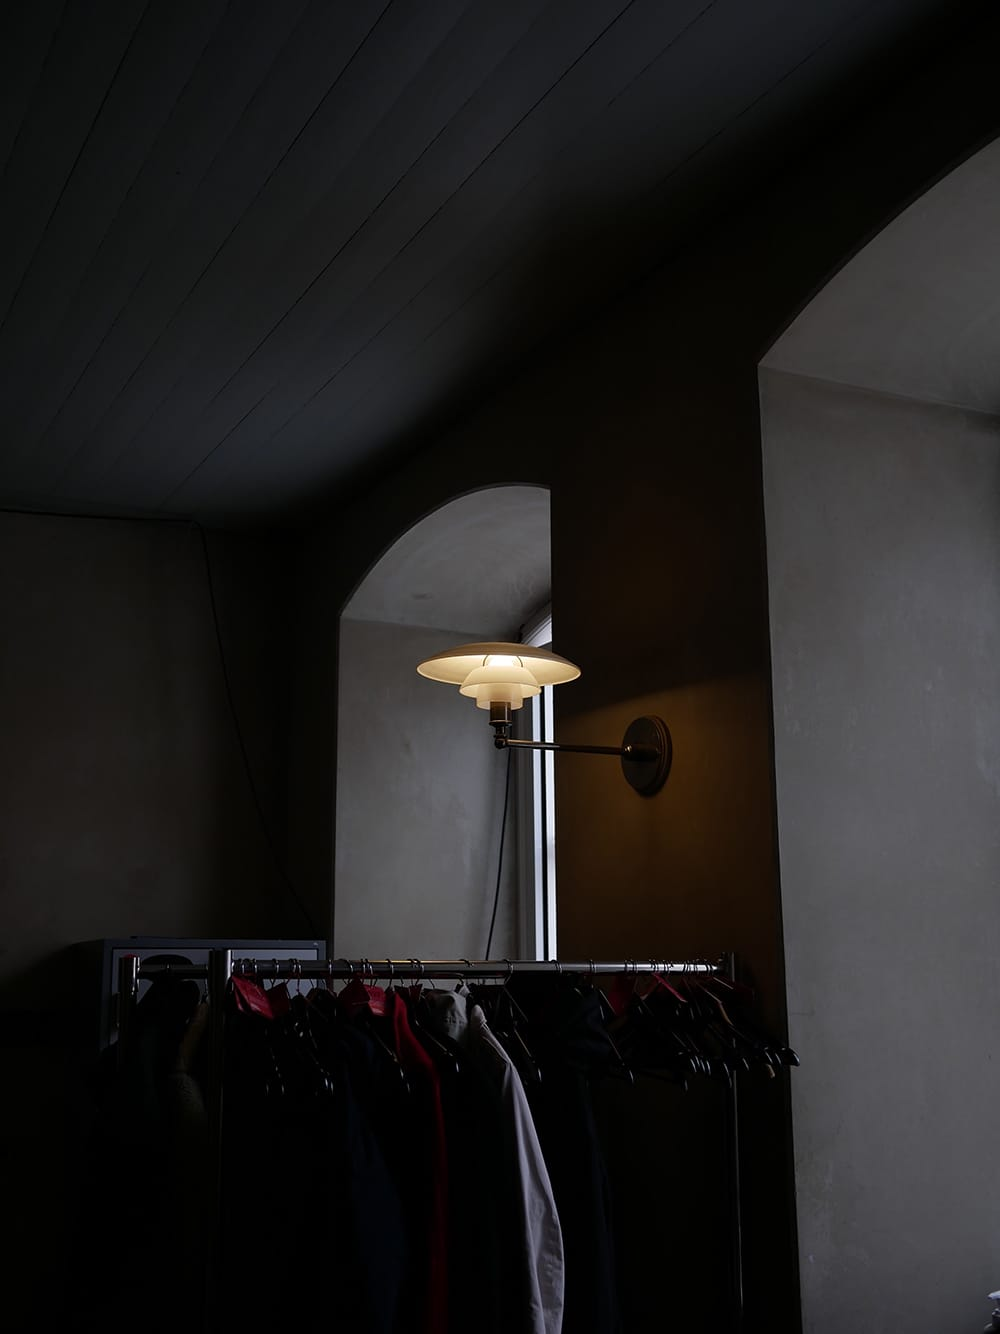 A design lamp shining in a dark cloakroom. Copenhagen